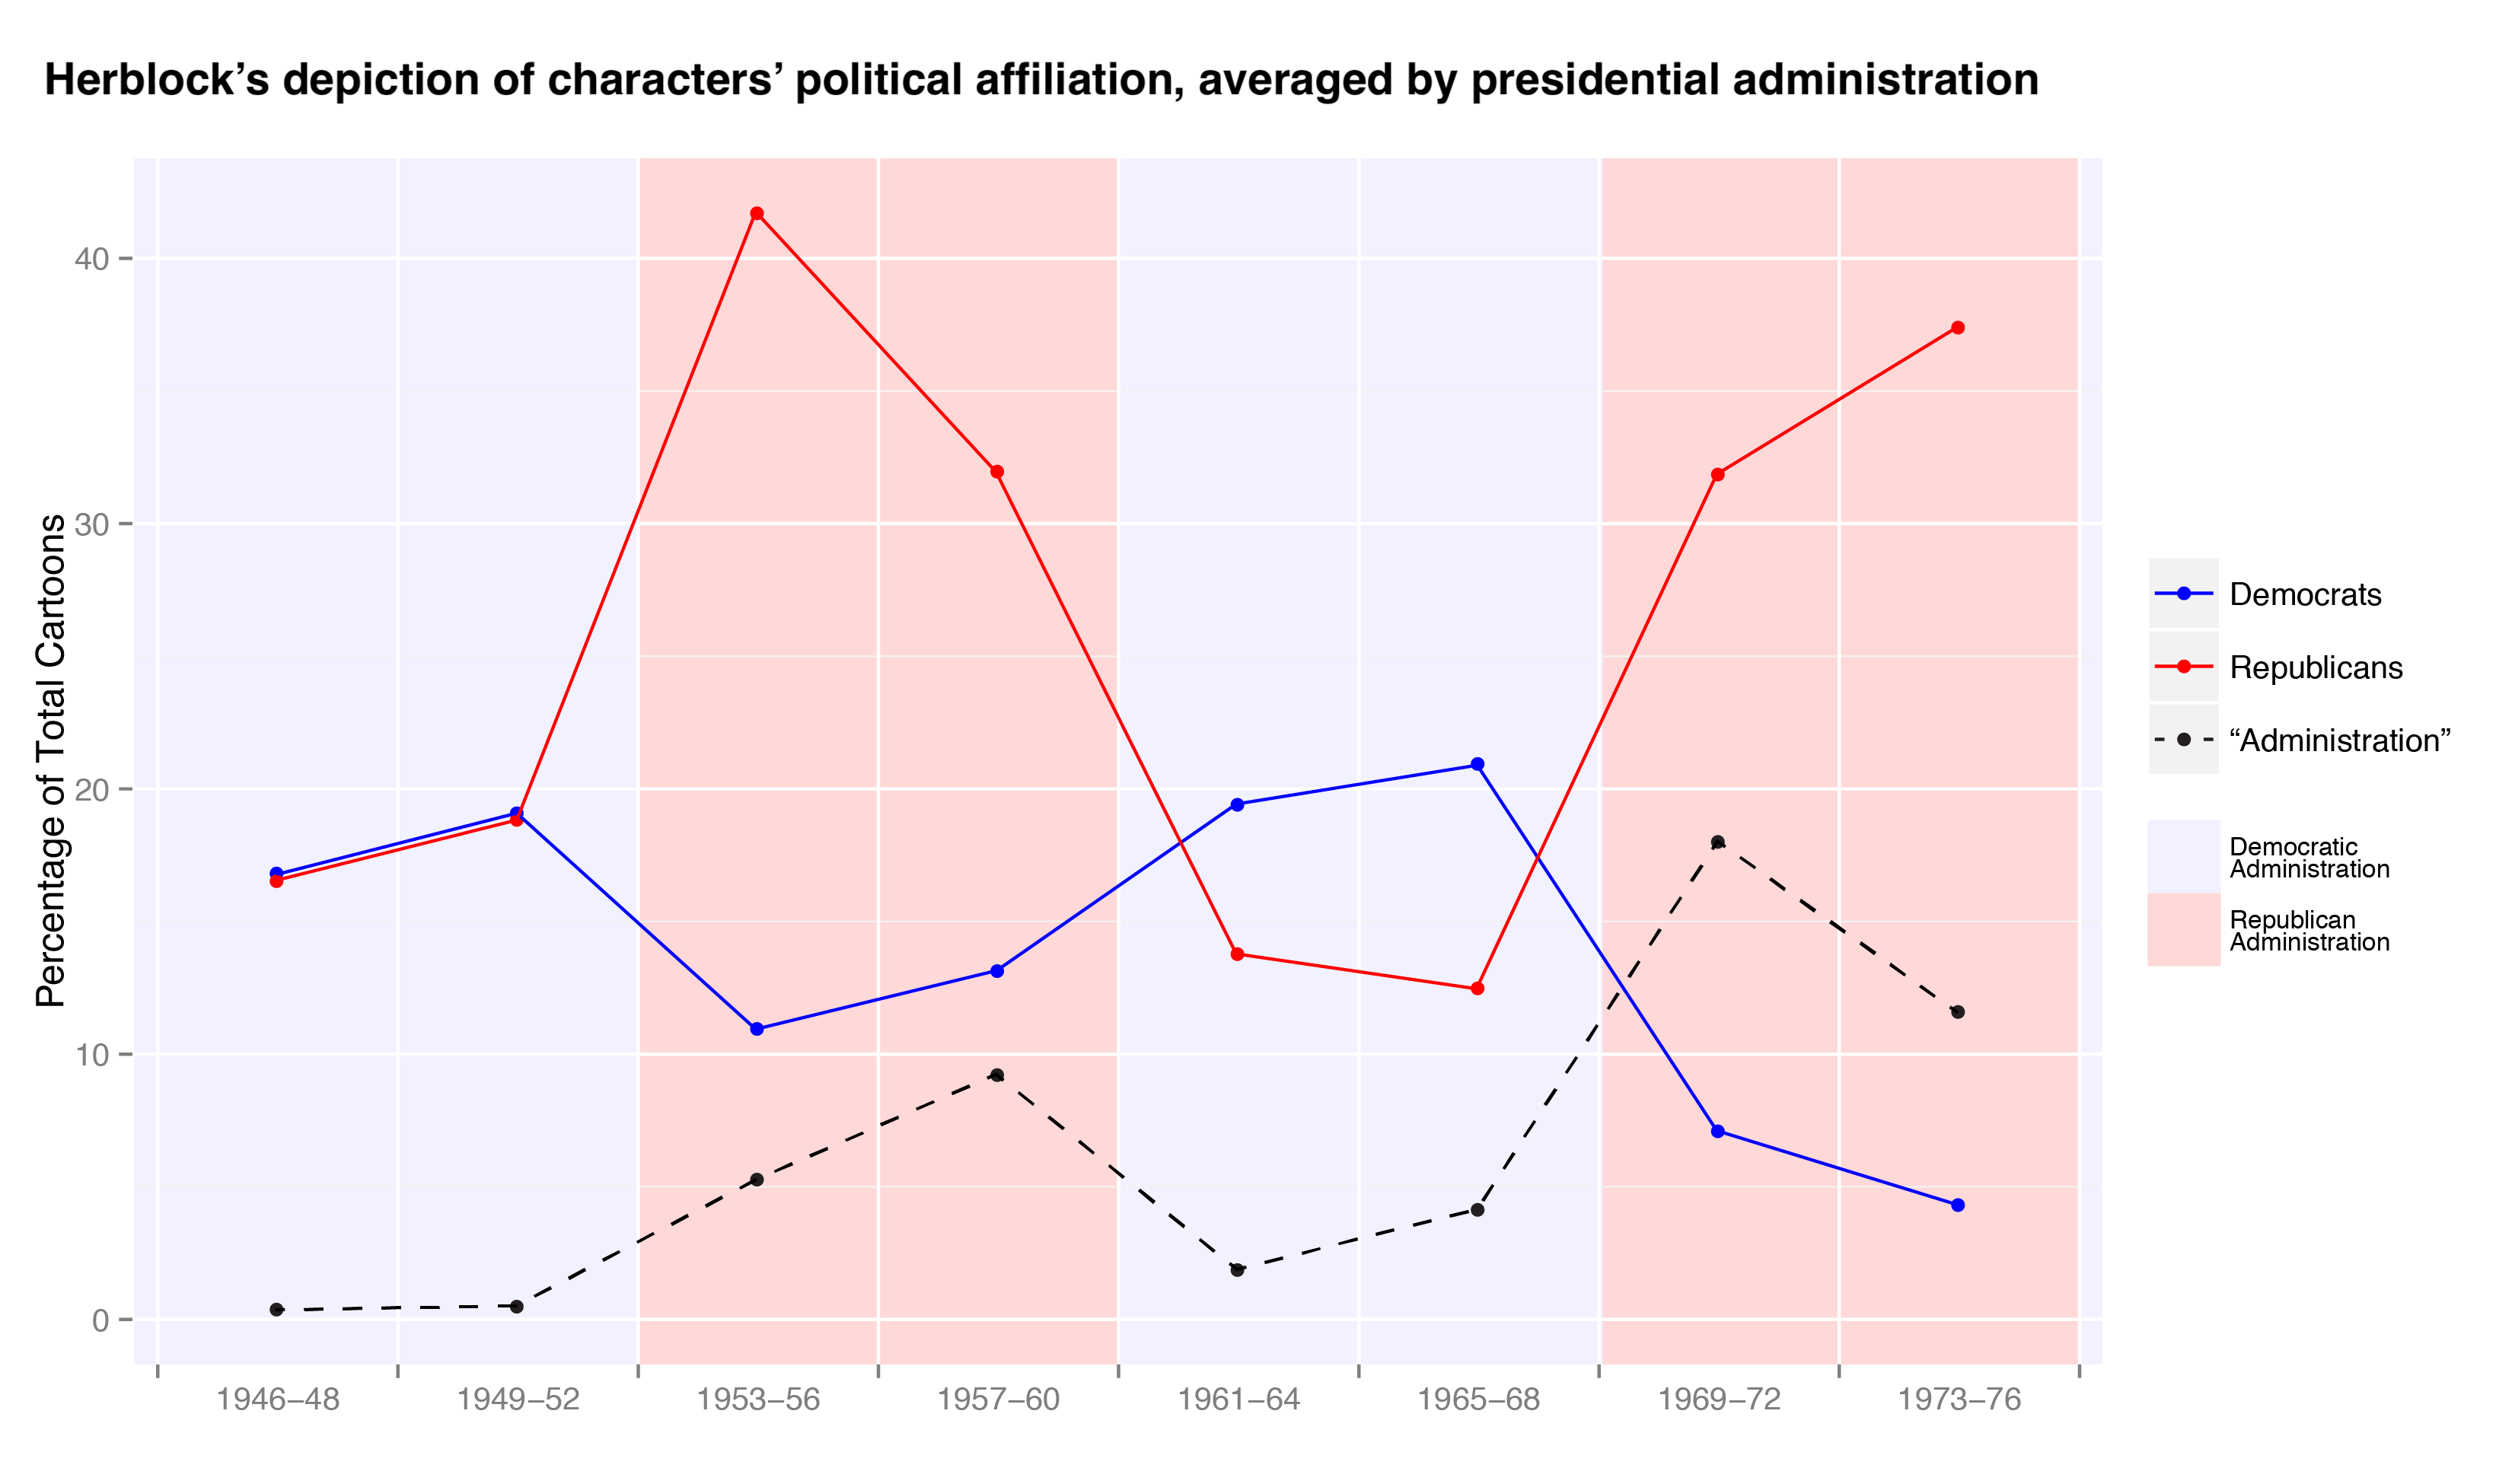 """Line graph showing how the percentage of Herblock cartoons depicting Democrats,Republicans, and the generic character """"Administration""""changed during different presidential administrations from nineteen forty-six to nineteen seventy-six."""""""